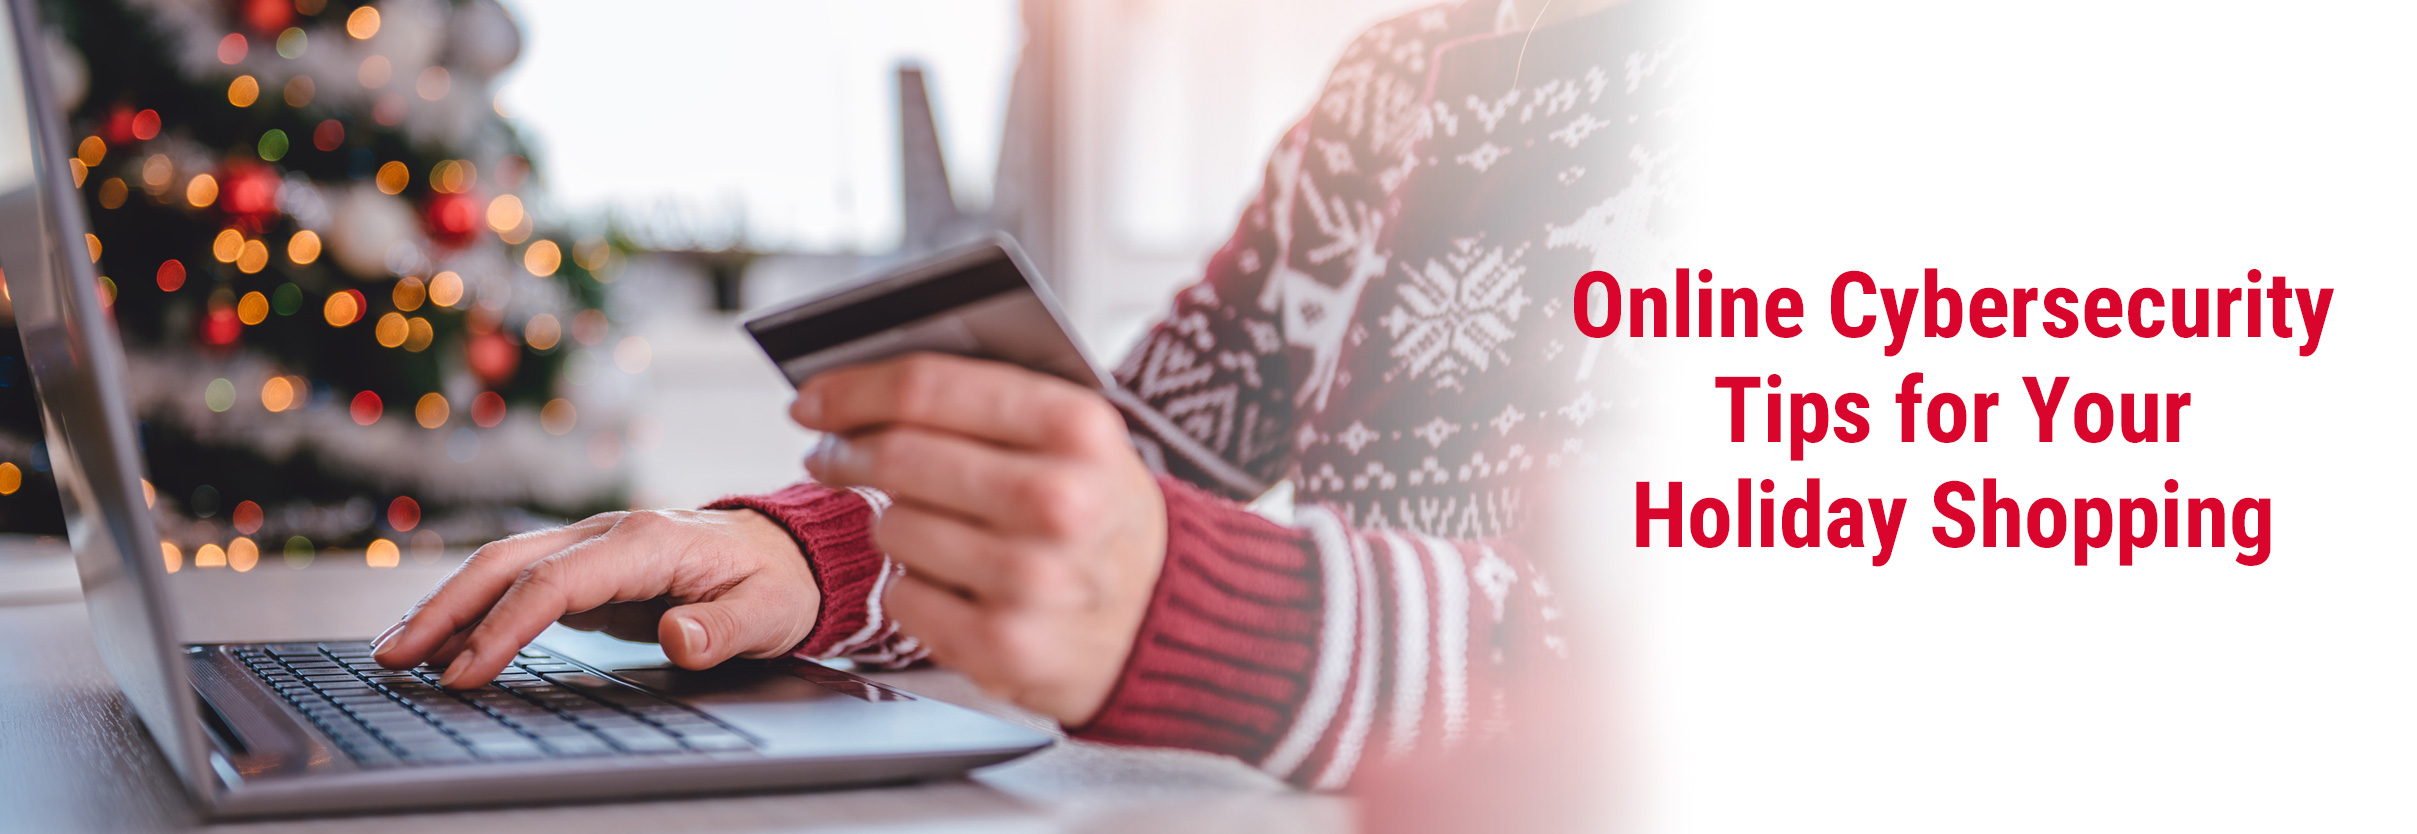 Online Cybersecurity Tips for Your Holiday Shopping